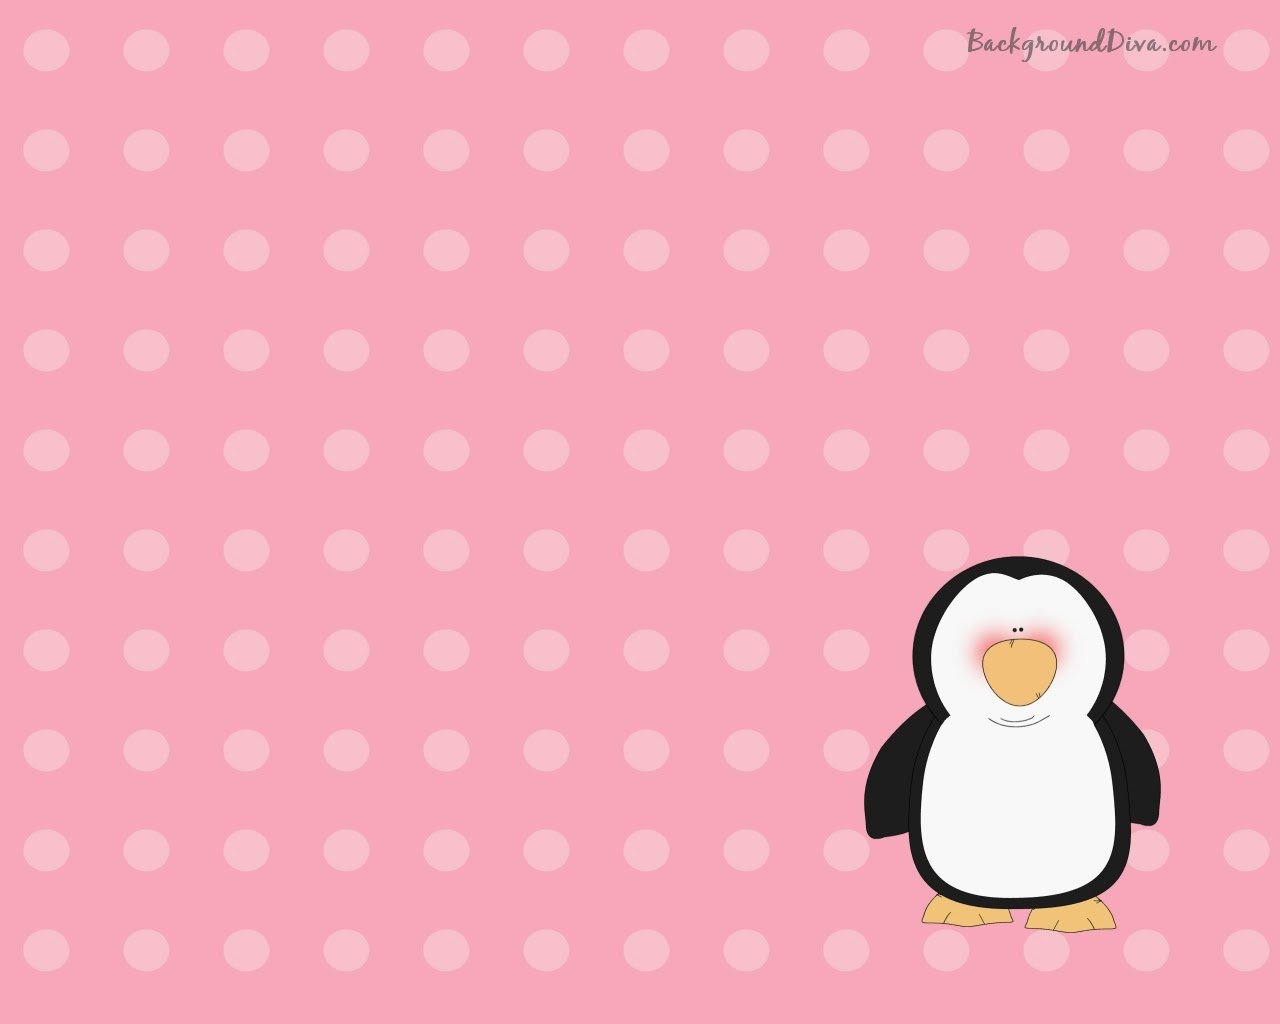 wallpapers bouglle gallery cute wallpapers for desktop